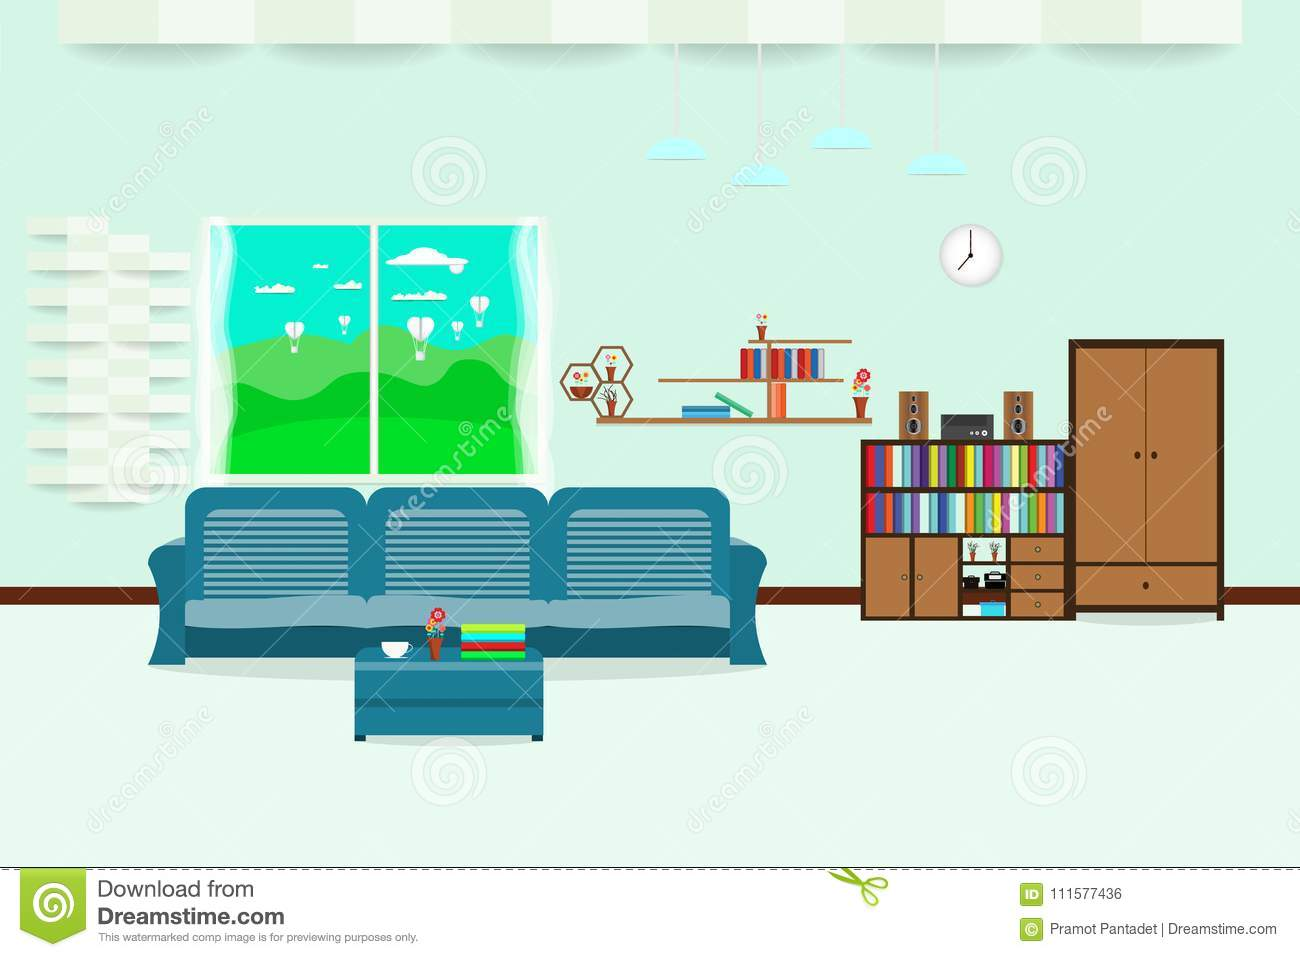 Living Room Interior Design Relax With Sofa And Bookshelf Window Sky Cloud Landscape Meadow In Wall